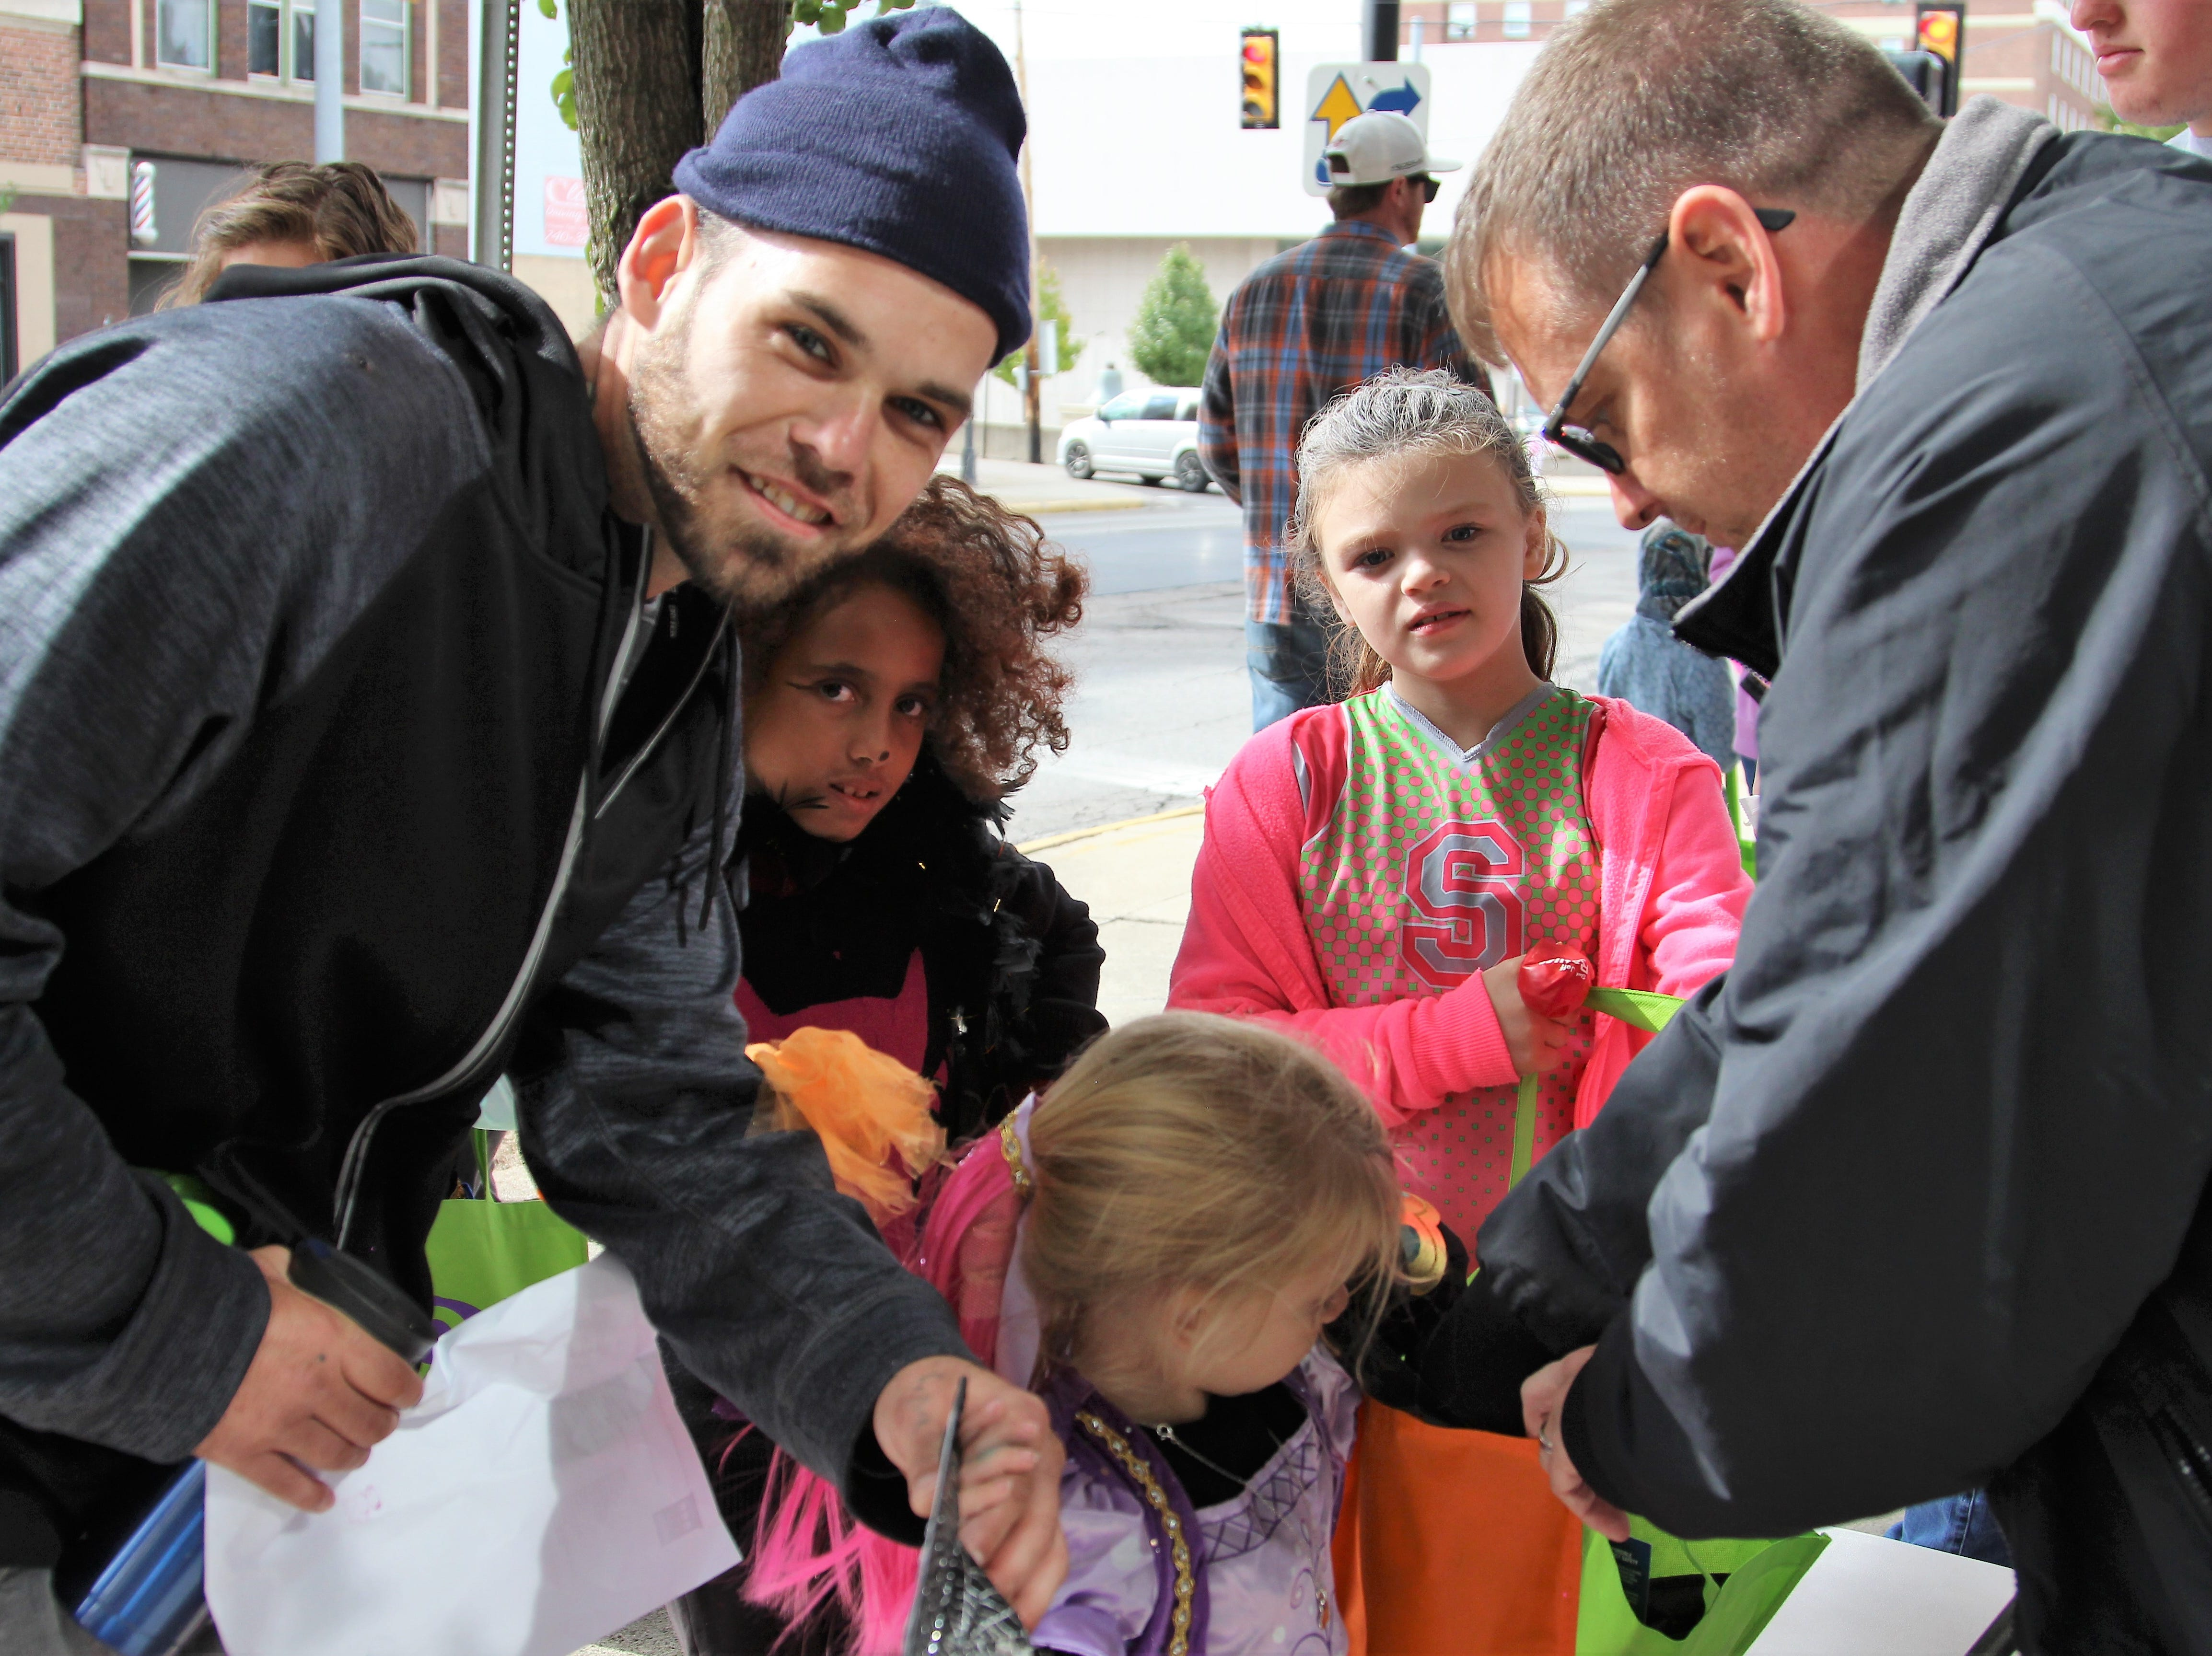 Marion residents walked around the city's downtown area on Saturday for early trick or treating.